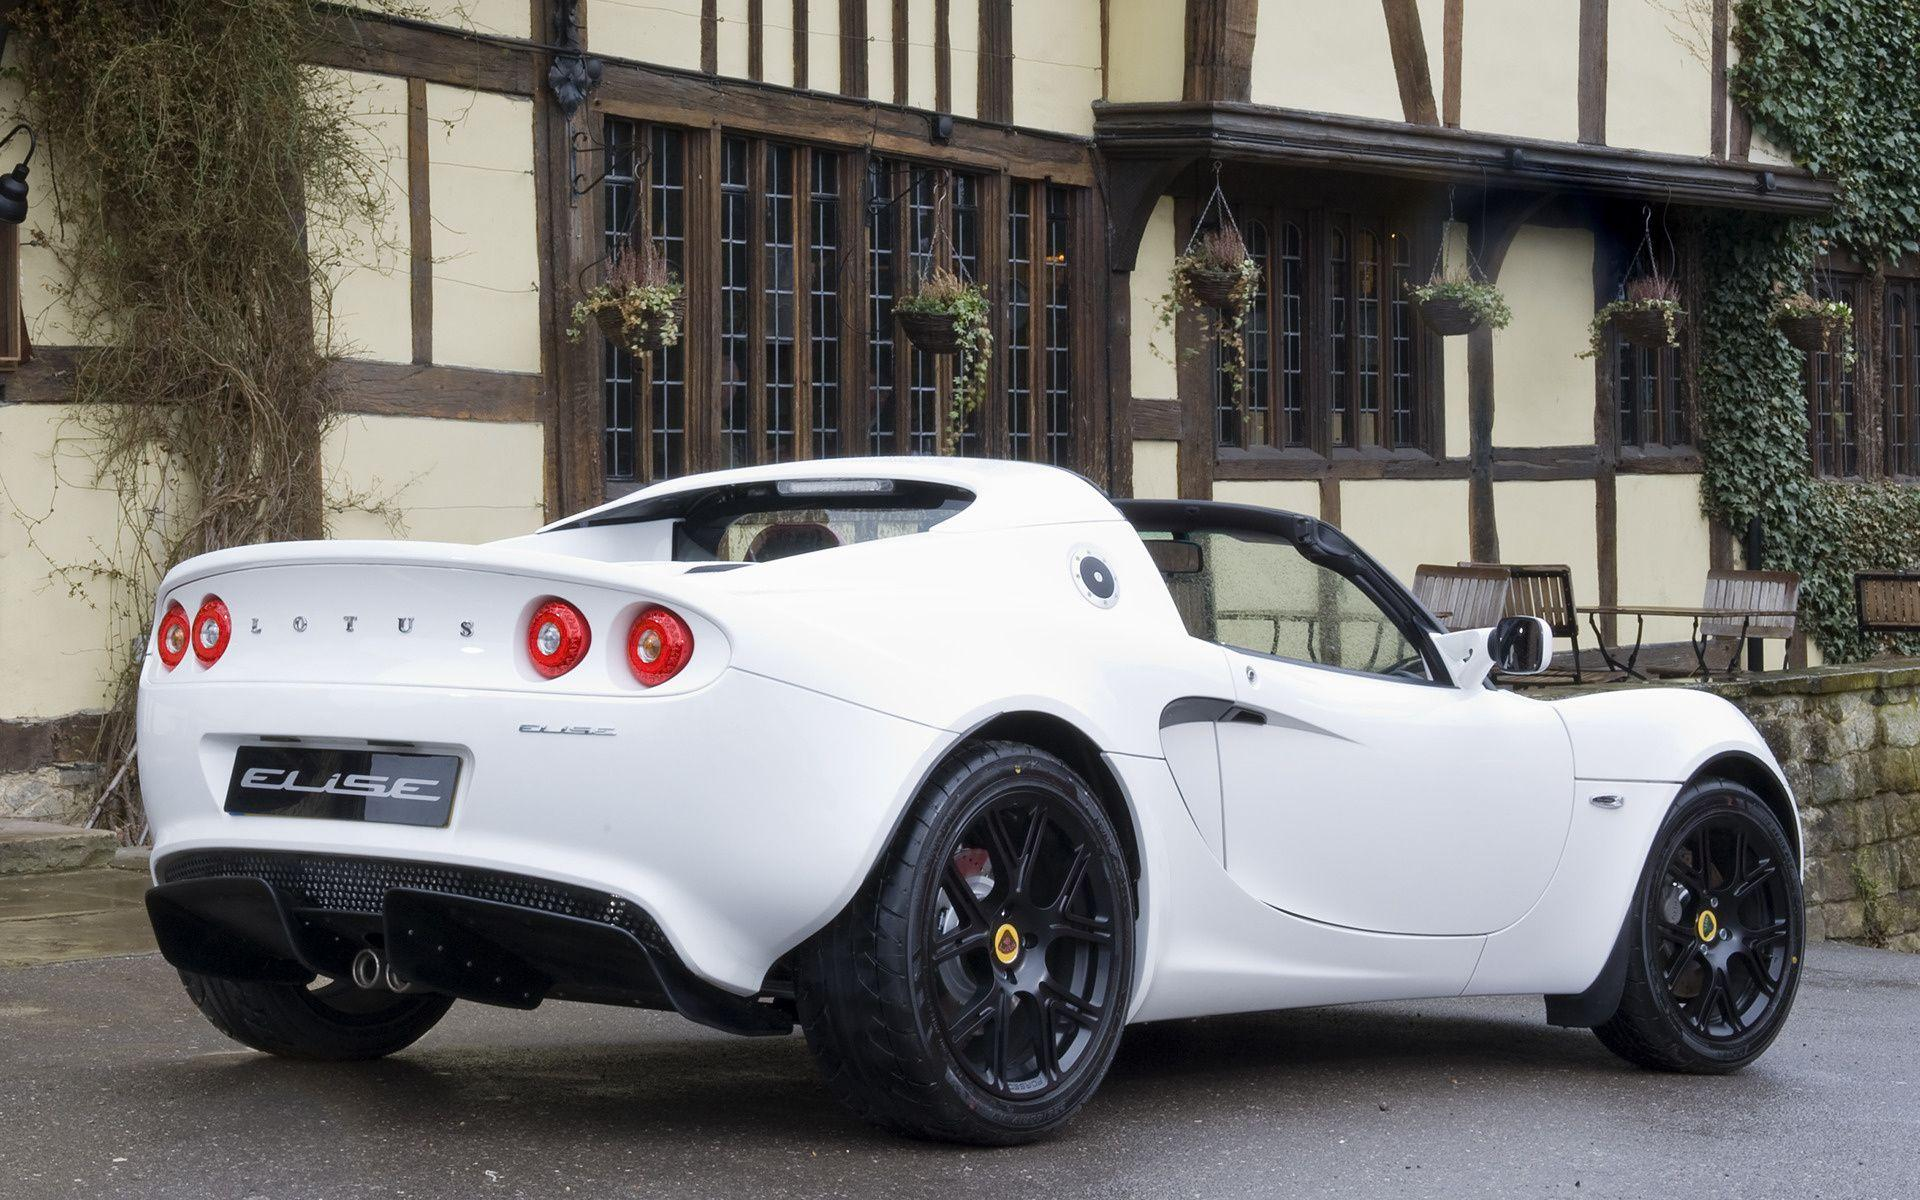 Lotus Elise (2010) Wallpapers and HD Images - Car Pixel